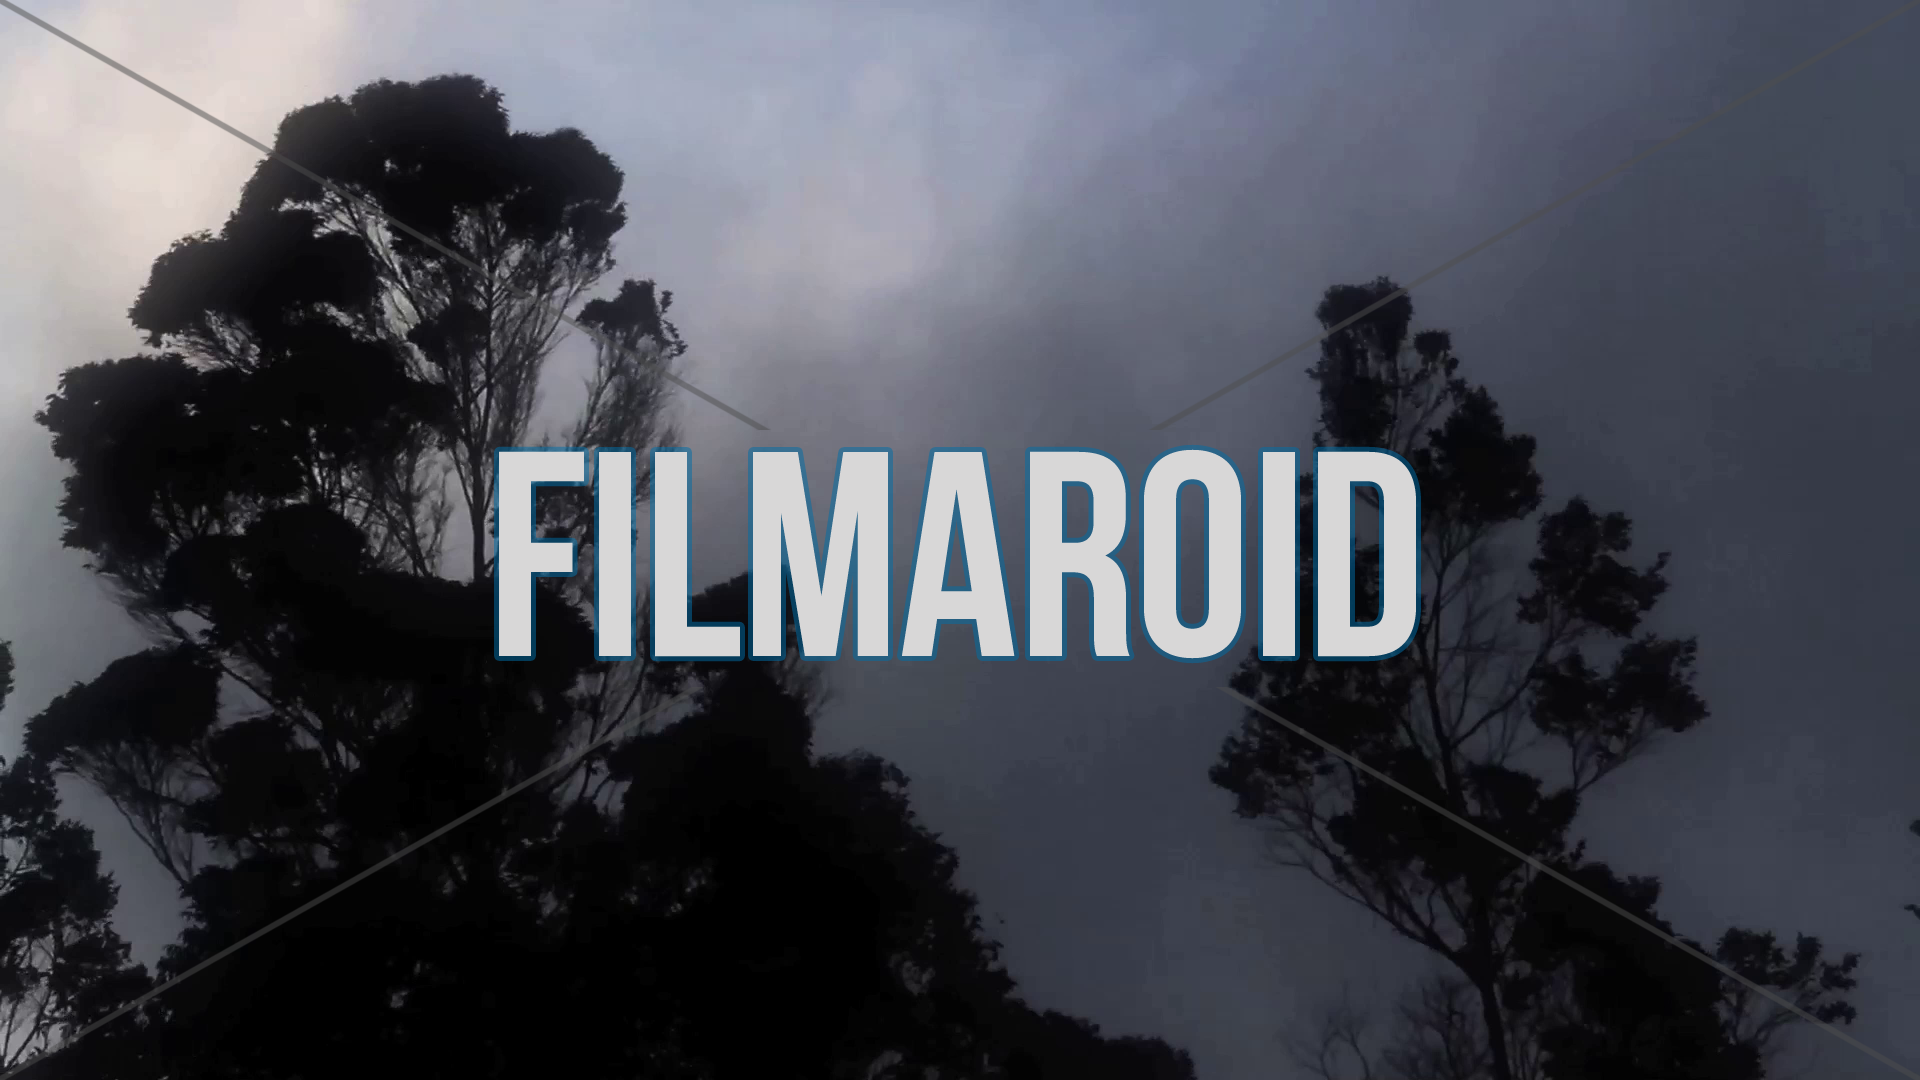 Eucalyptus trees moving with wind and fog - A collection of stock footage about Nature